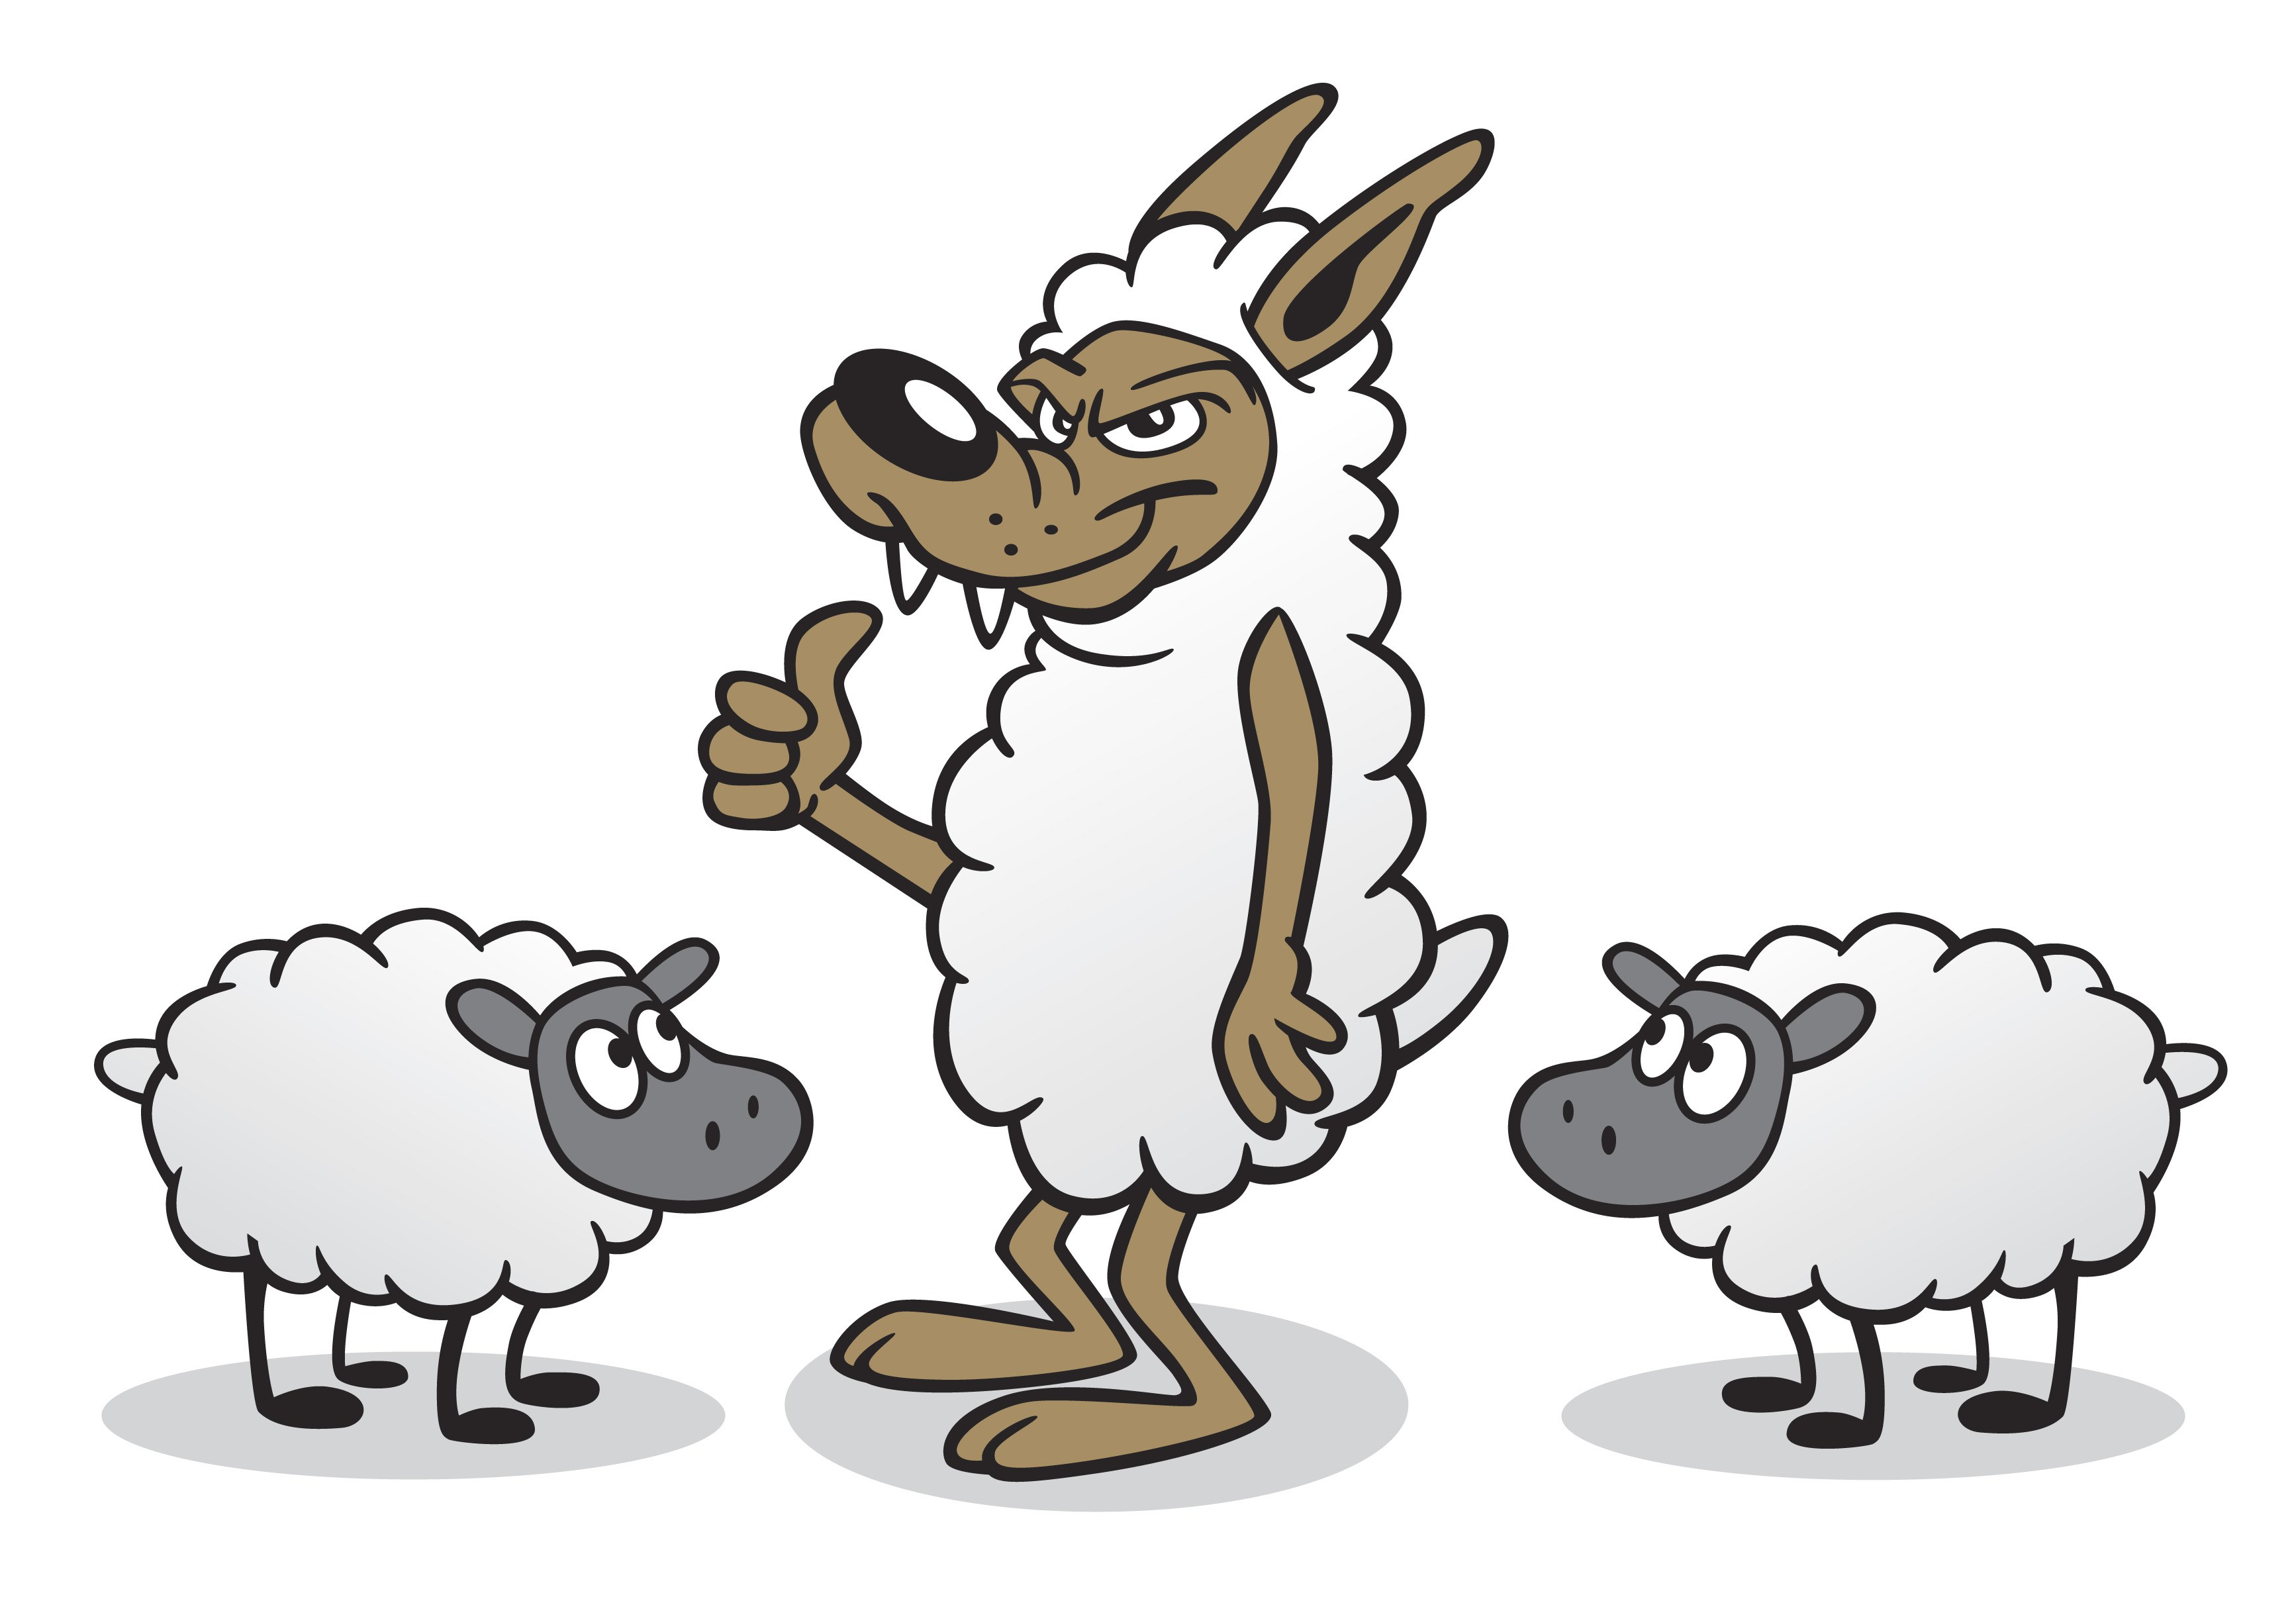 3468x2412 Cartoon Wolf In Sheep Clothing Clip Art 1801525 Misfit Matriarch